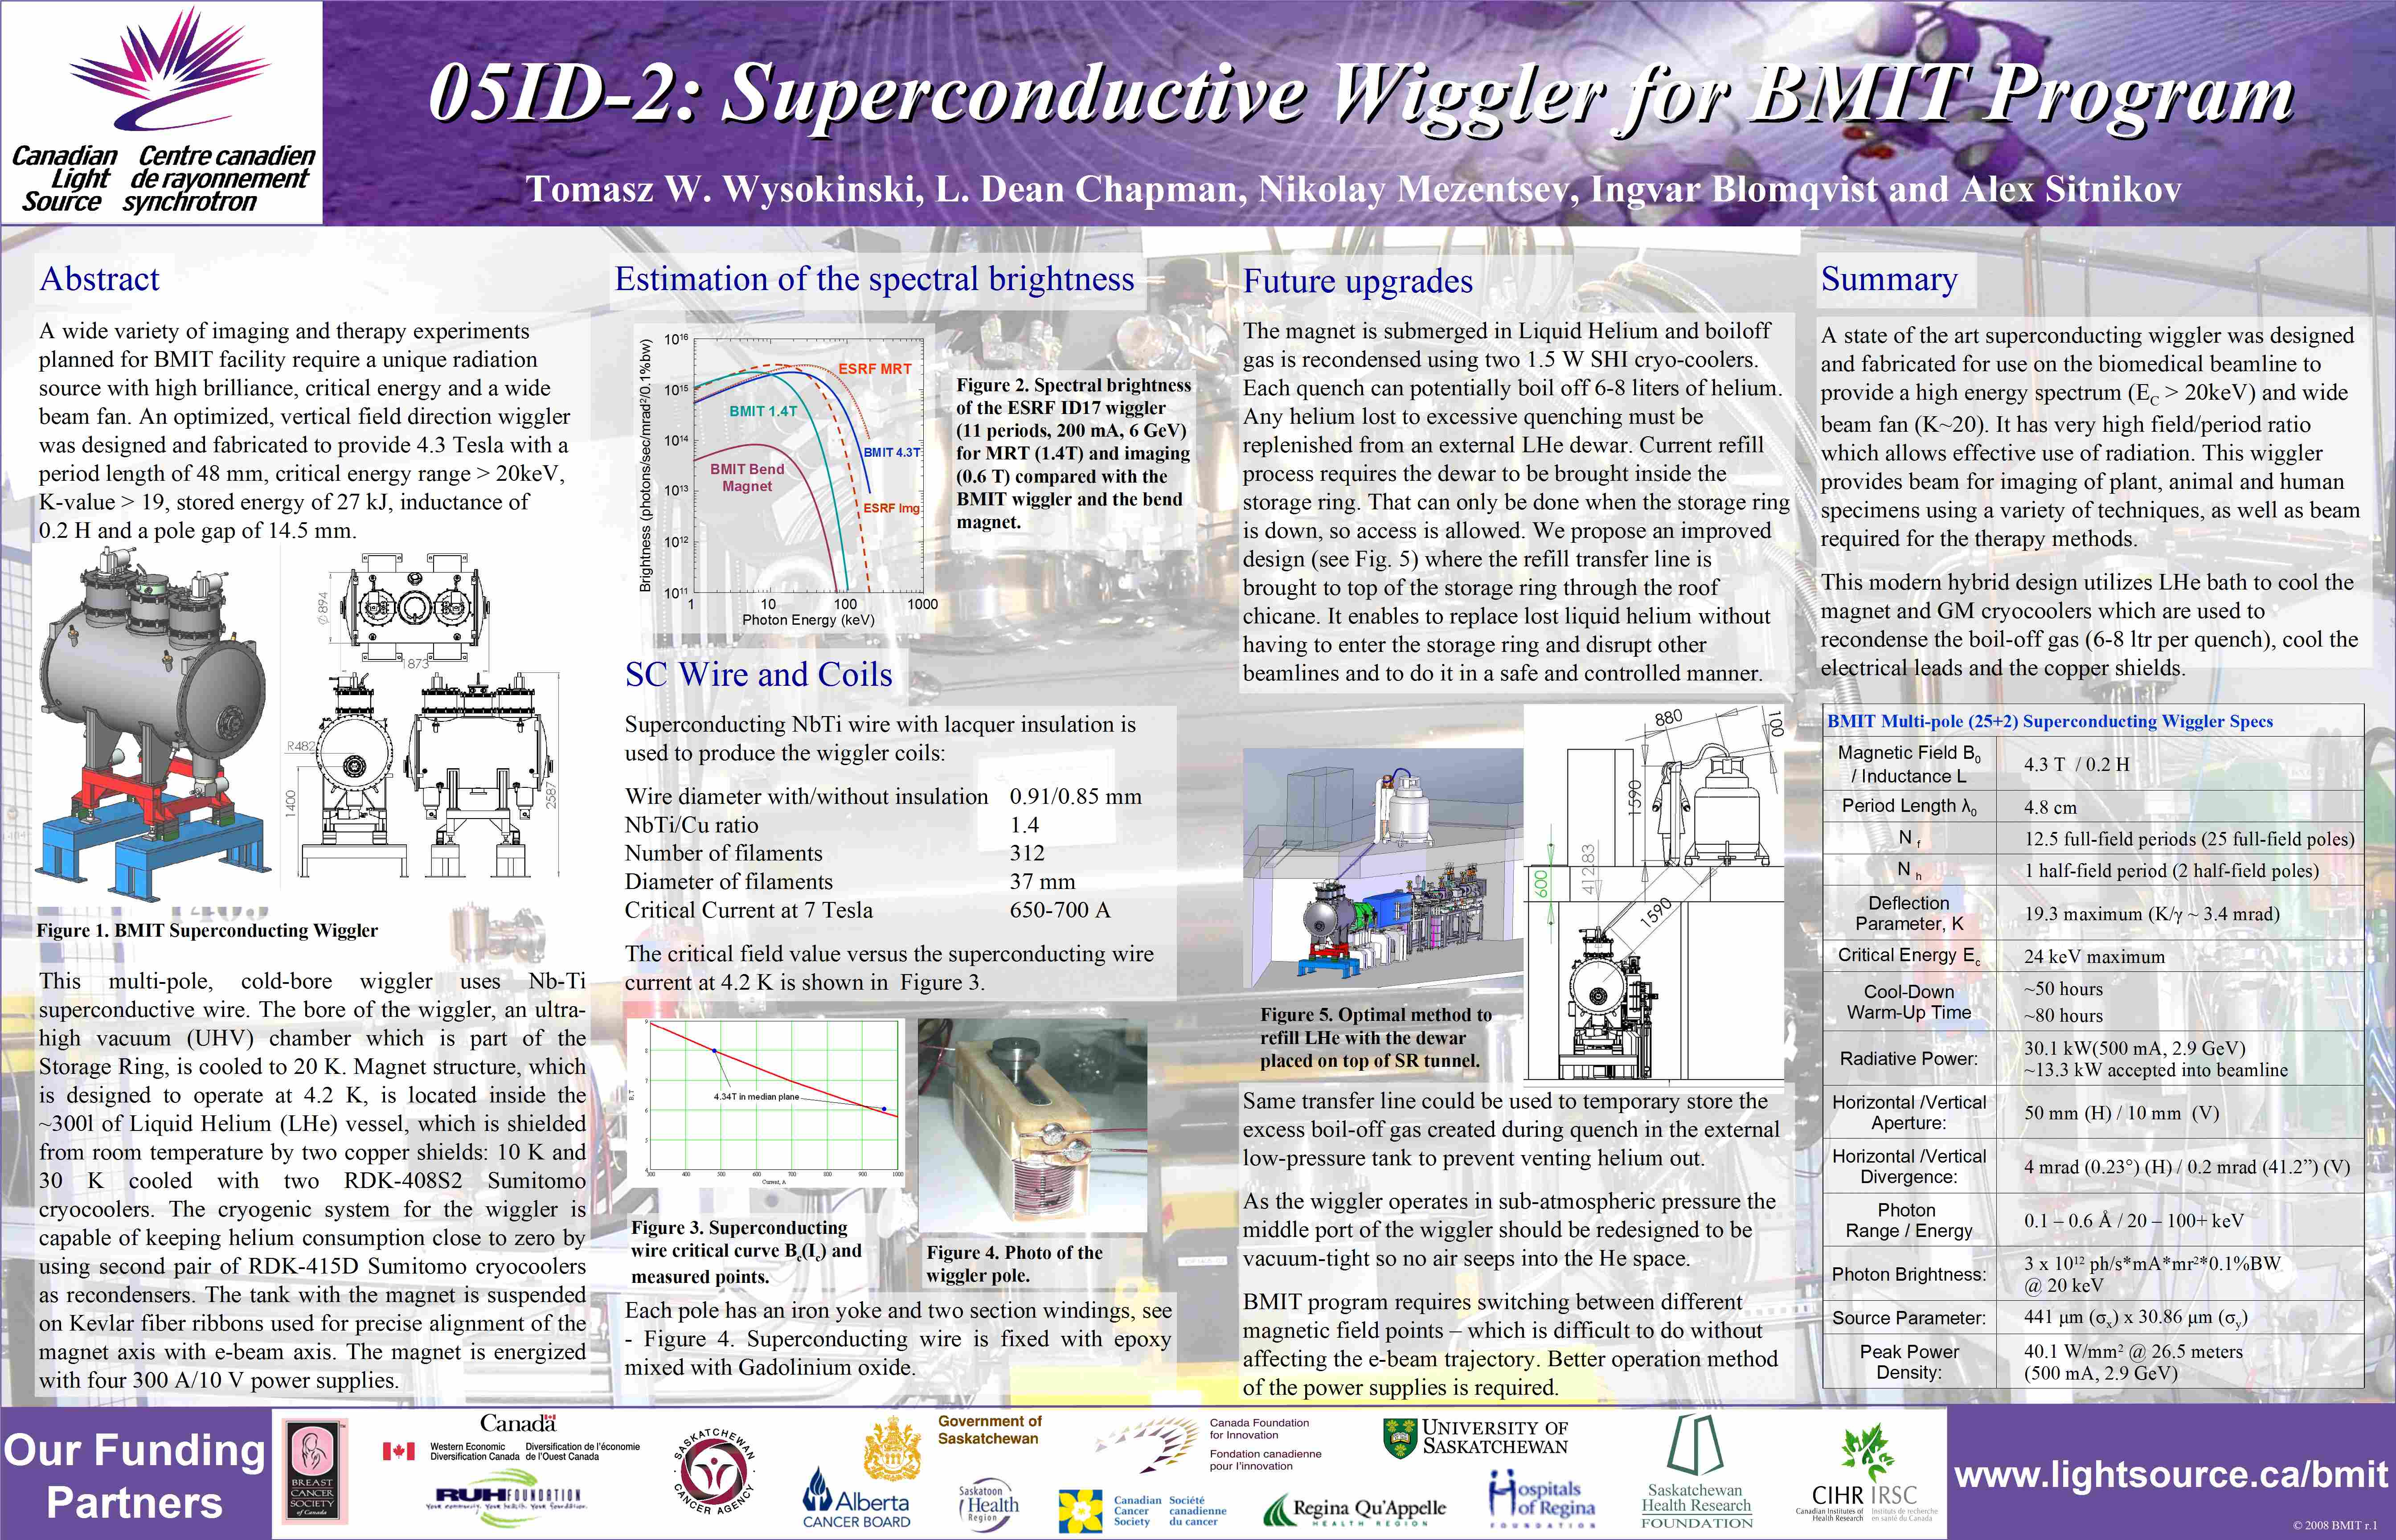 05ID-2: Superconductive Wiggler for BMIT Program Image